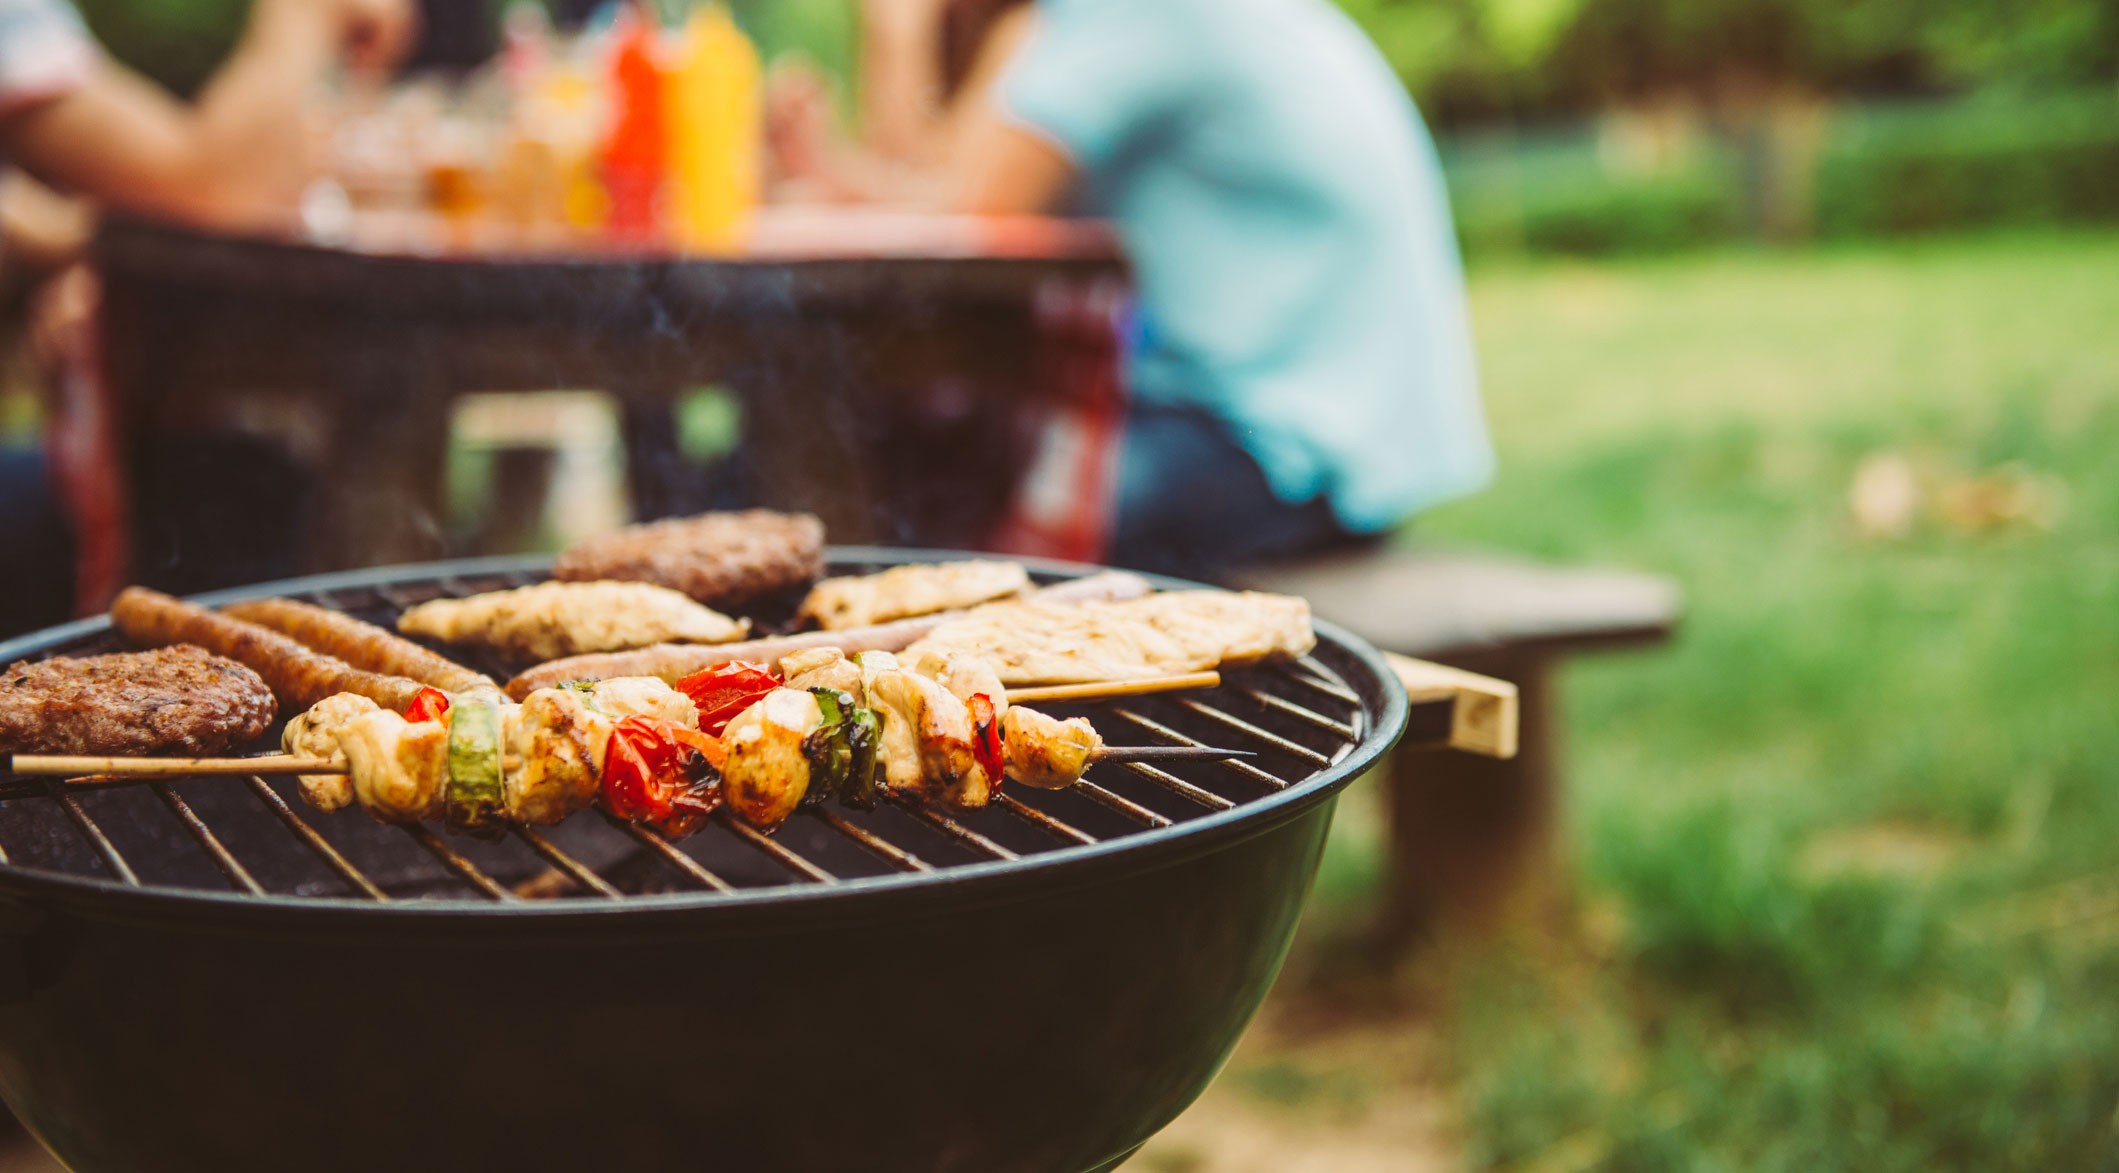 Summer Grilling Tips For Your Next Barbecue